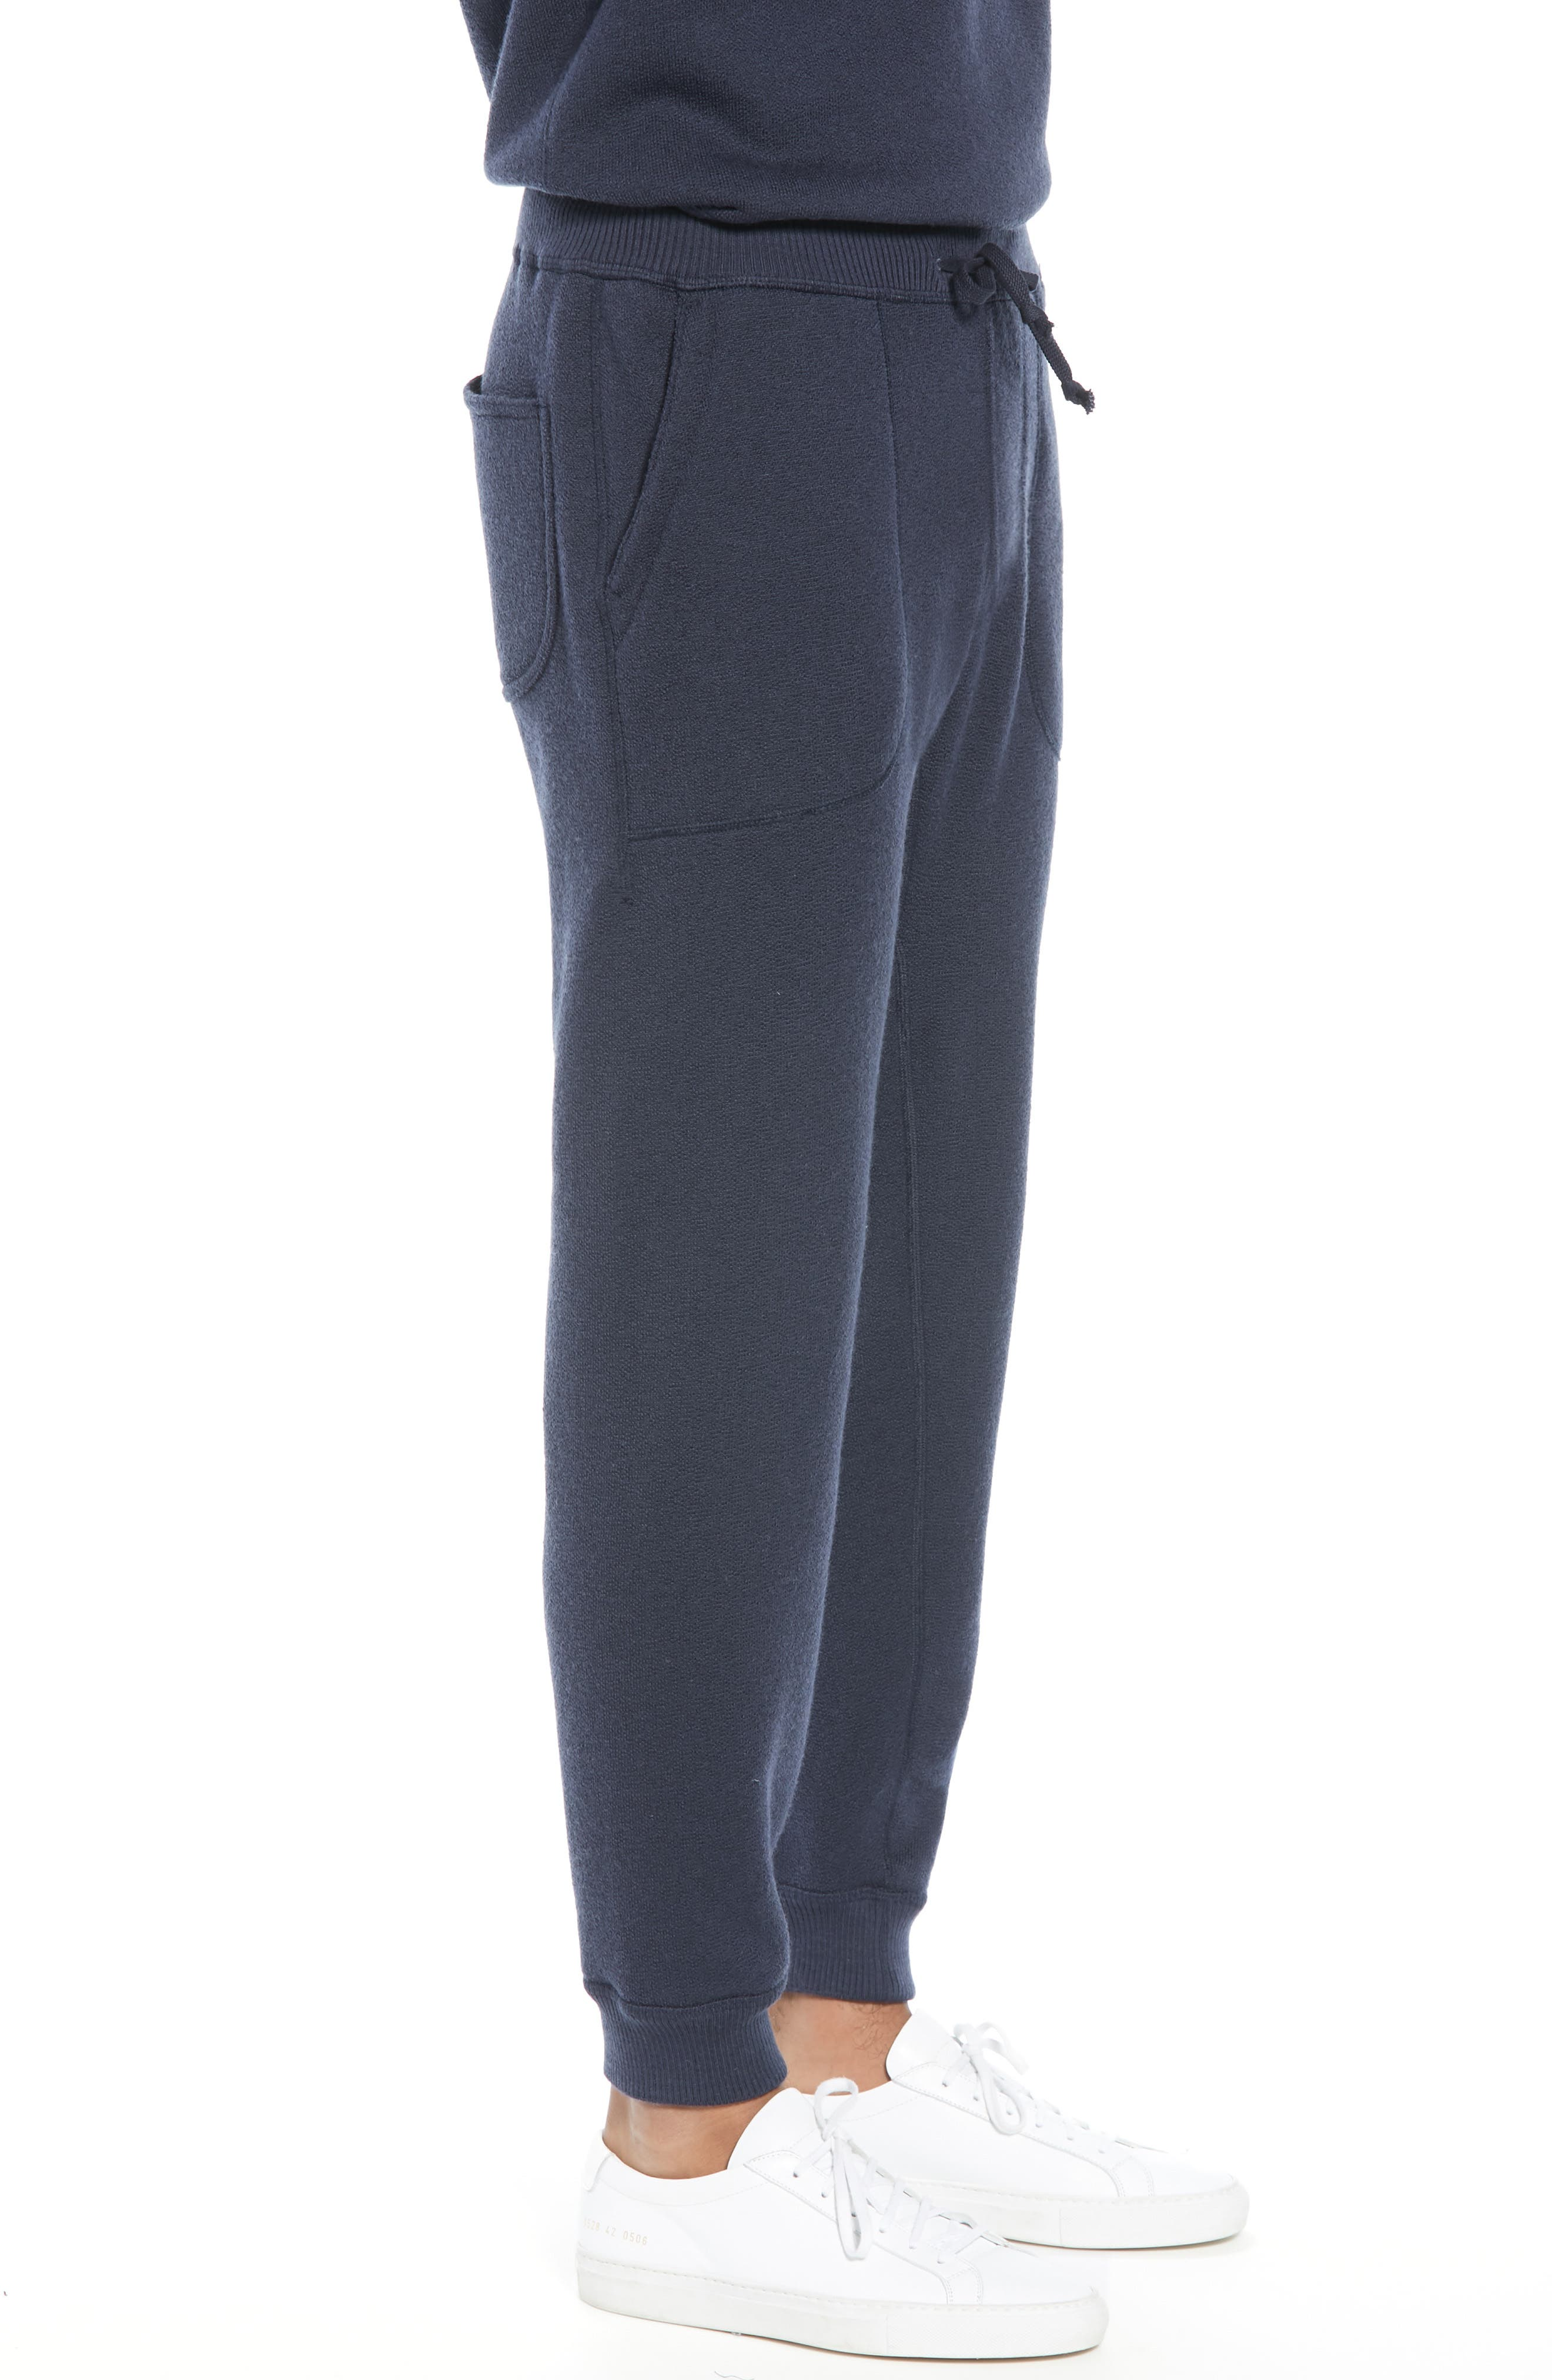 BEST MADE CO.,                             The Merino Wool Fleece Sweatpants,                             Alternate thumbnail 4, color,                             NAVY